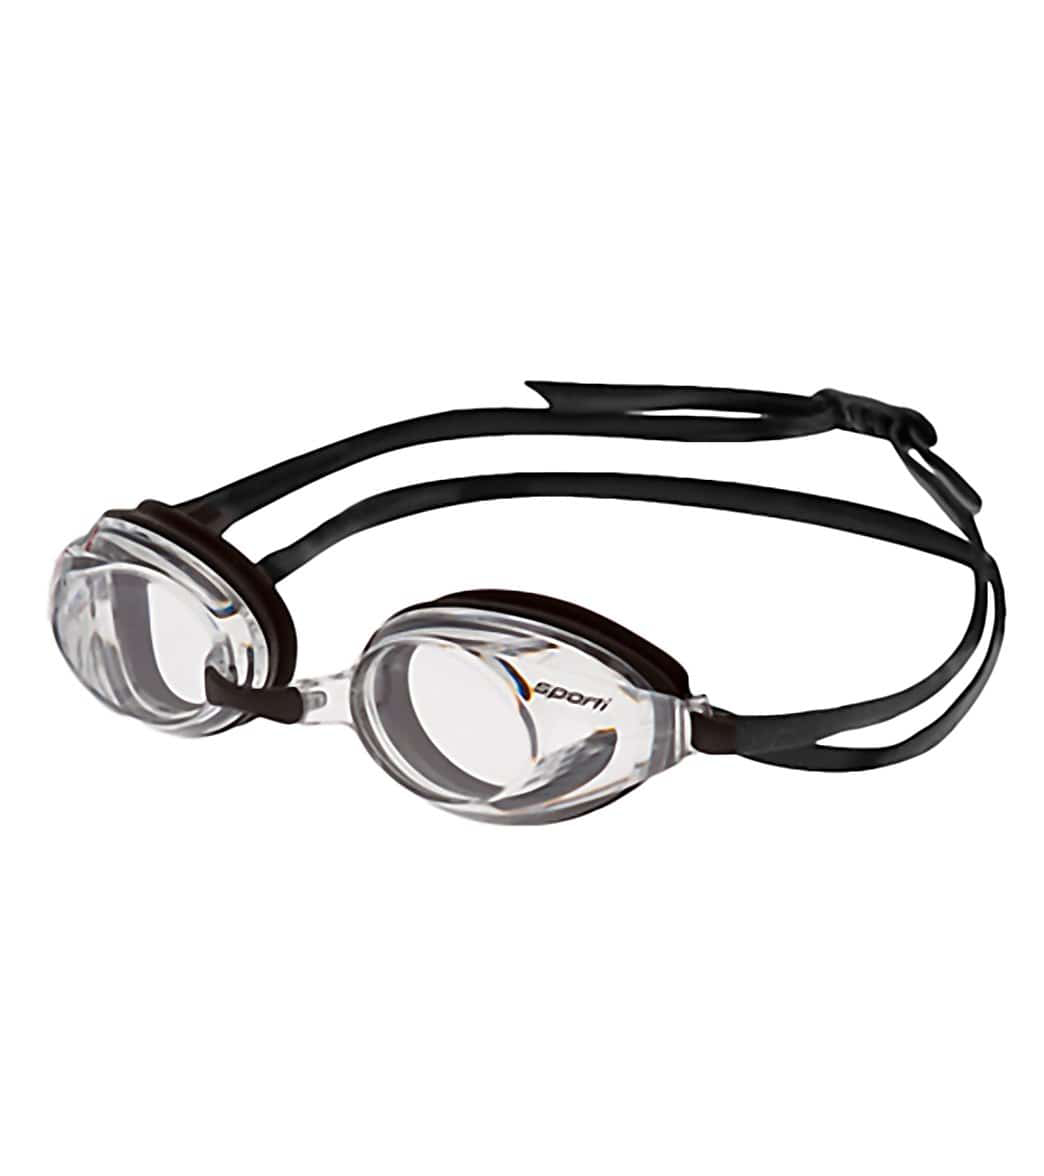 3326dabb4ab Sporti Antifog S2 Optical Goggle at SwimOutlet.com